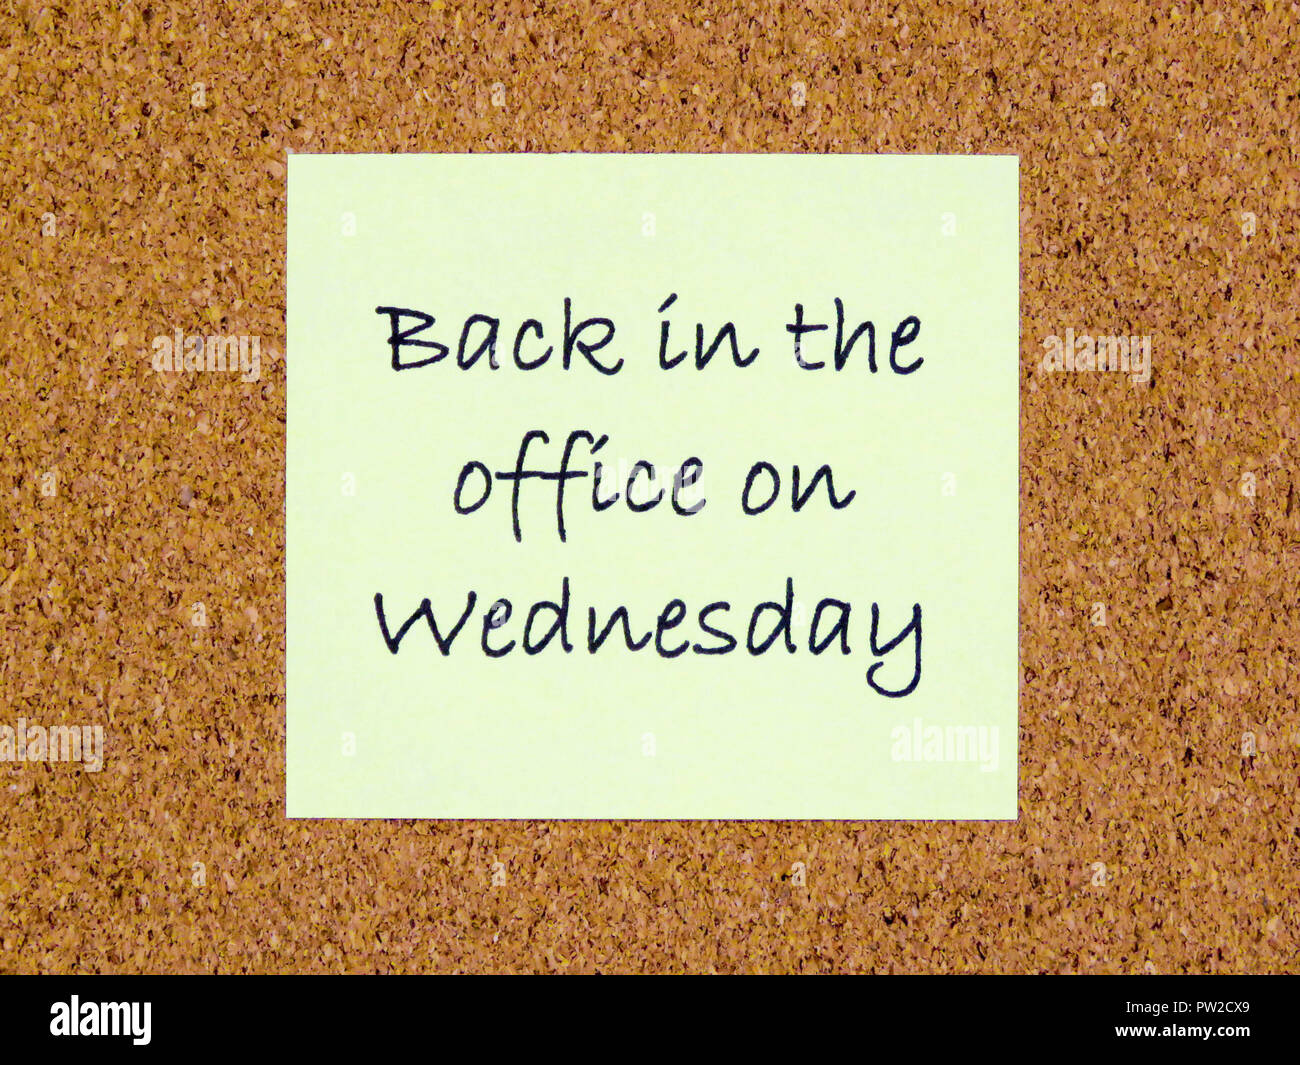 A yellow sticky note with back in the office on Wednesday written on it on a cork board background Stock Photo